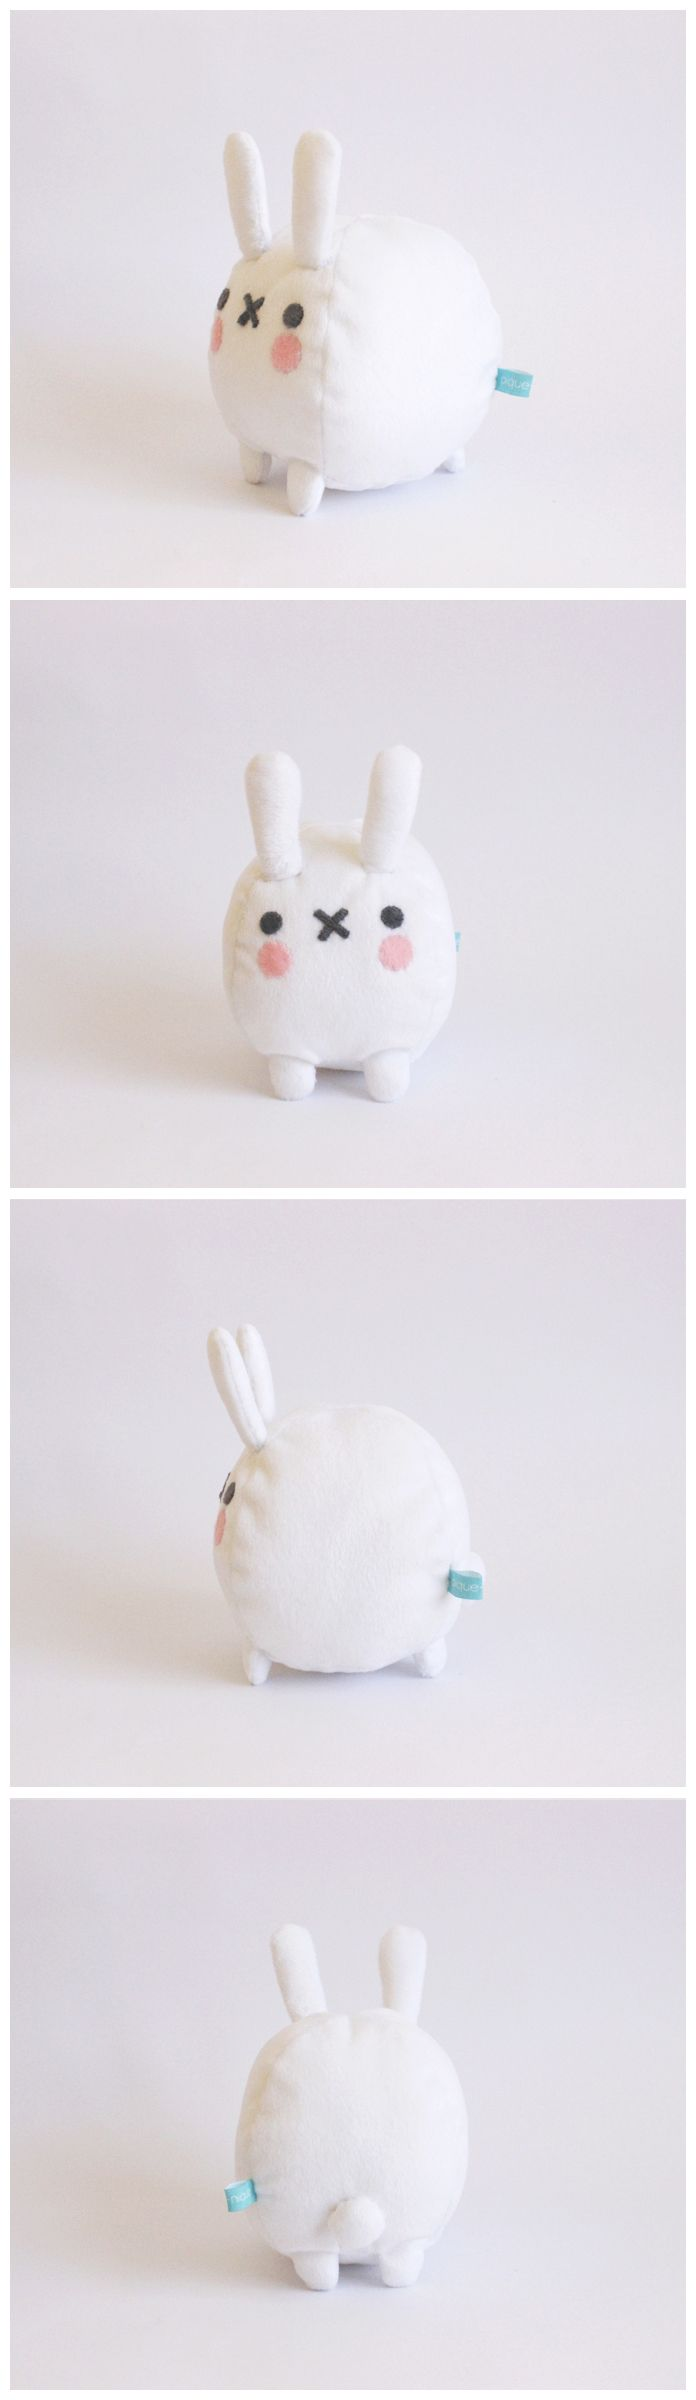 "Hehehe~ The little ""x"" mouth always makes it look like the bunny has eaten something sour!"